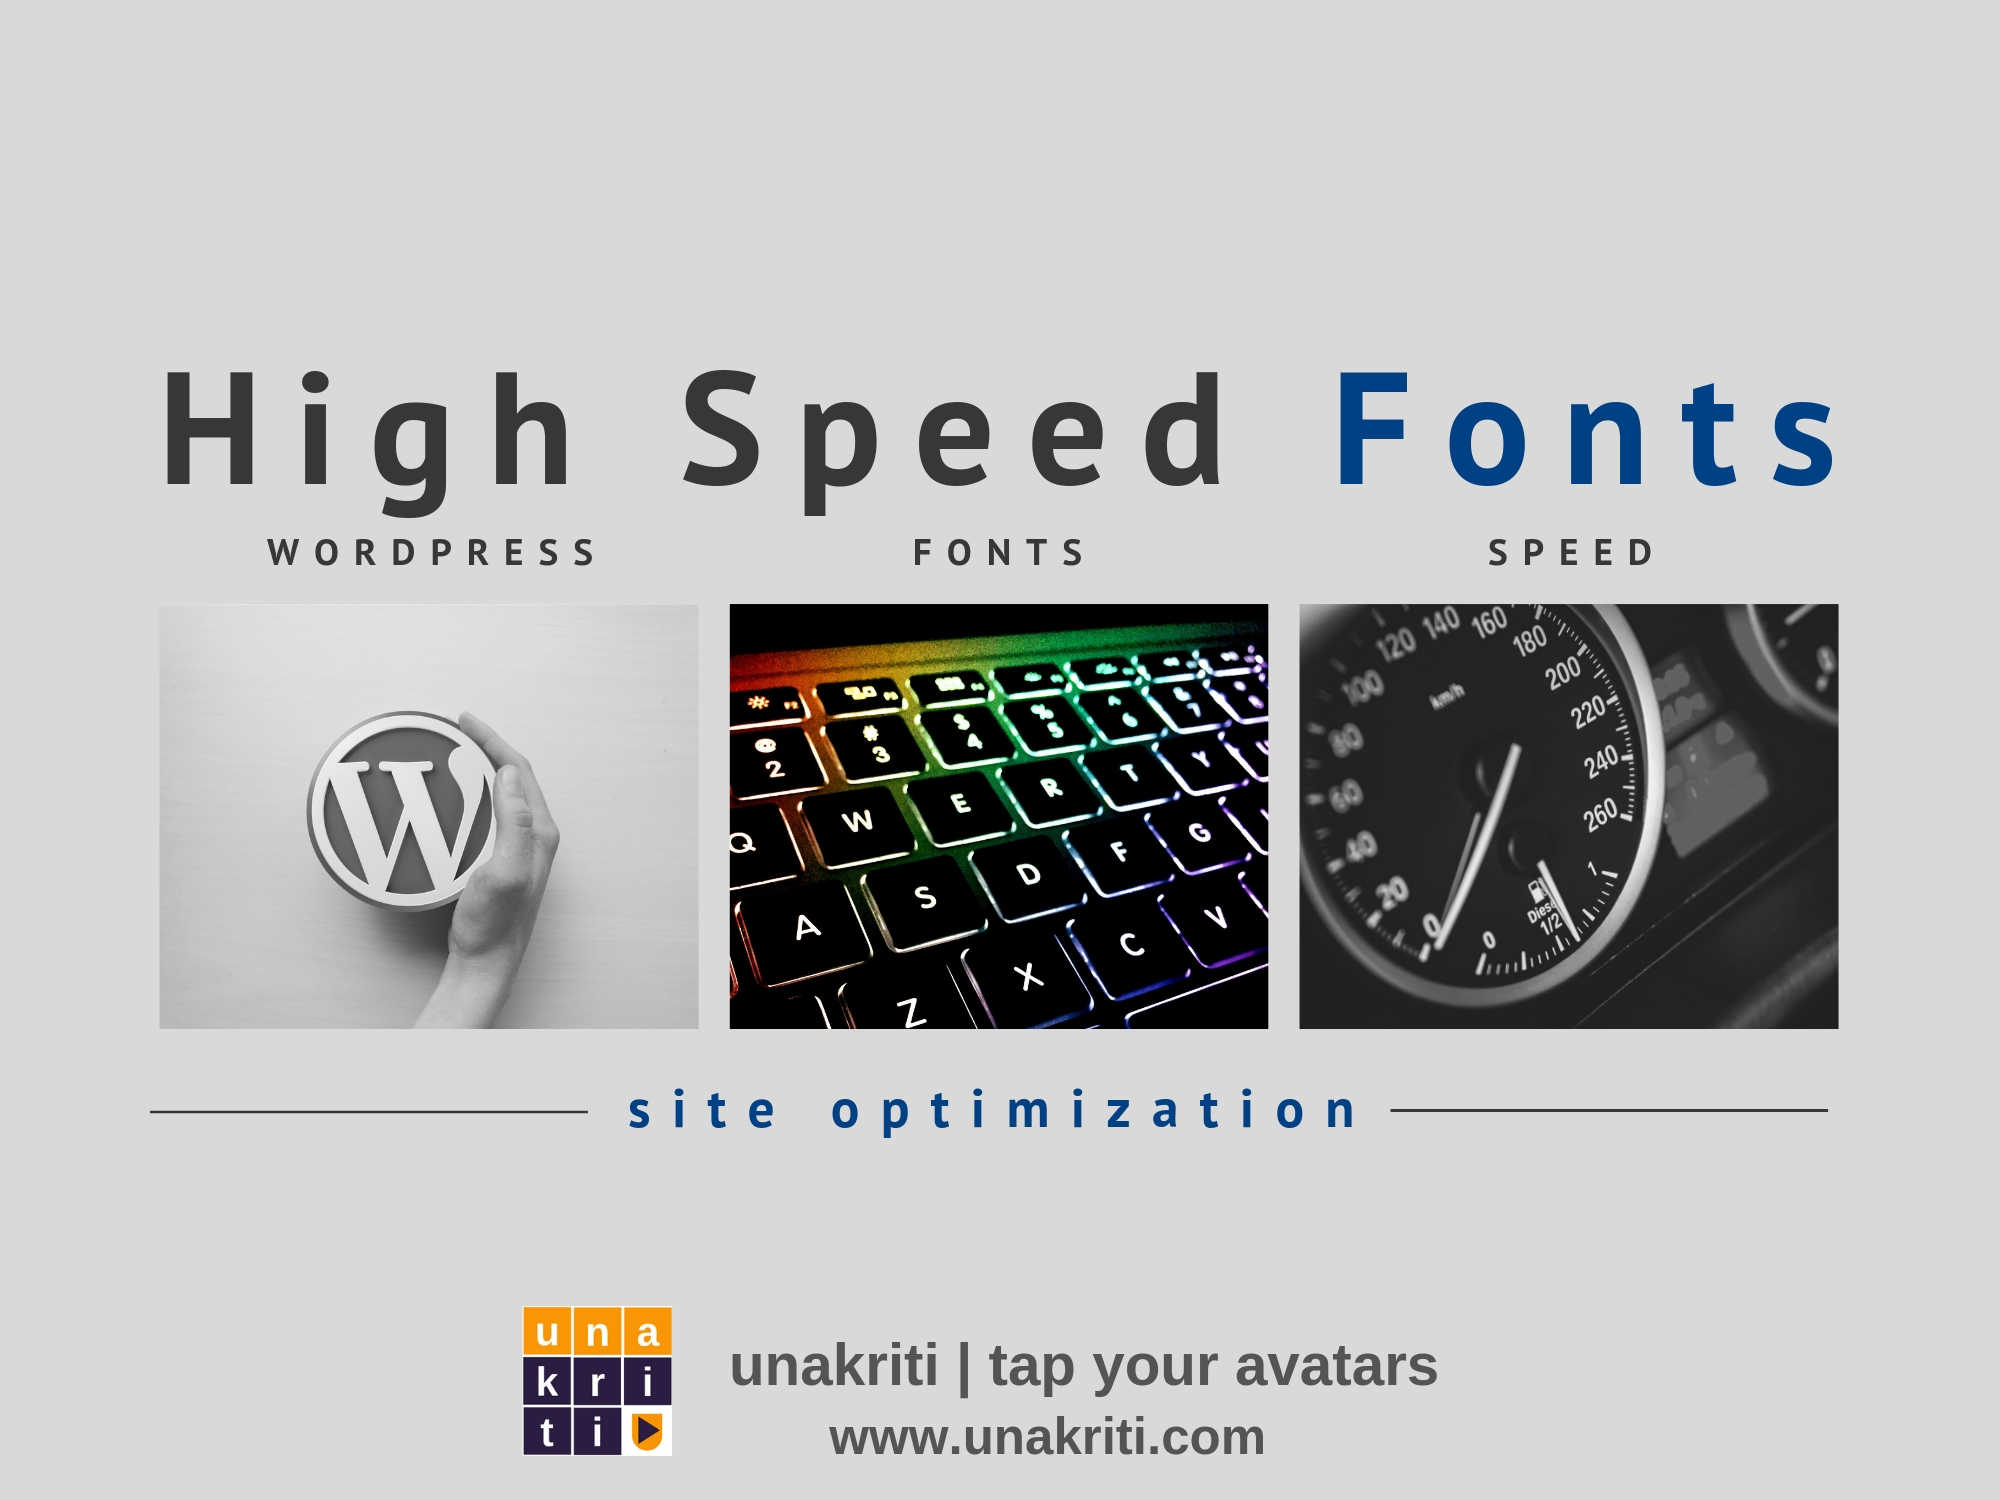 How to speed-up your website with the web safe font?